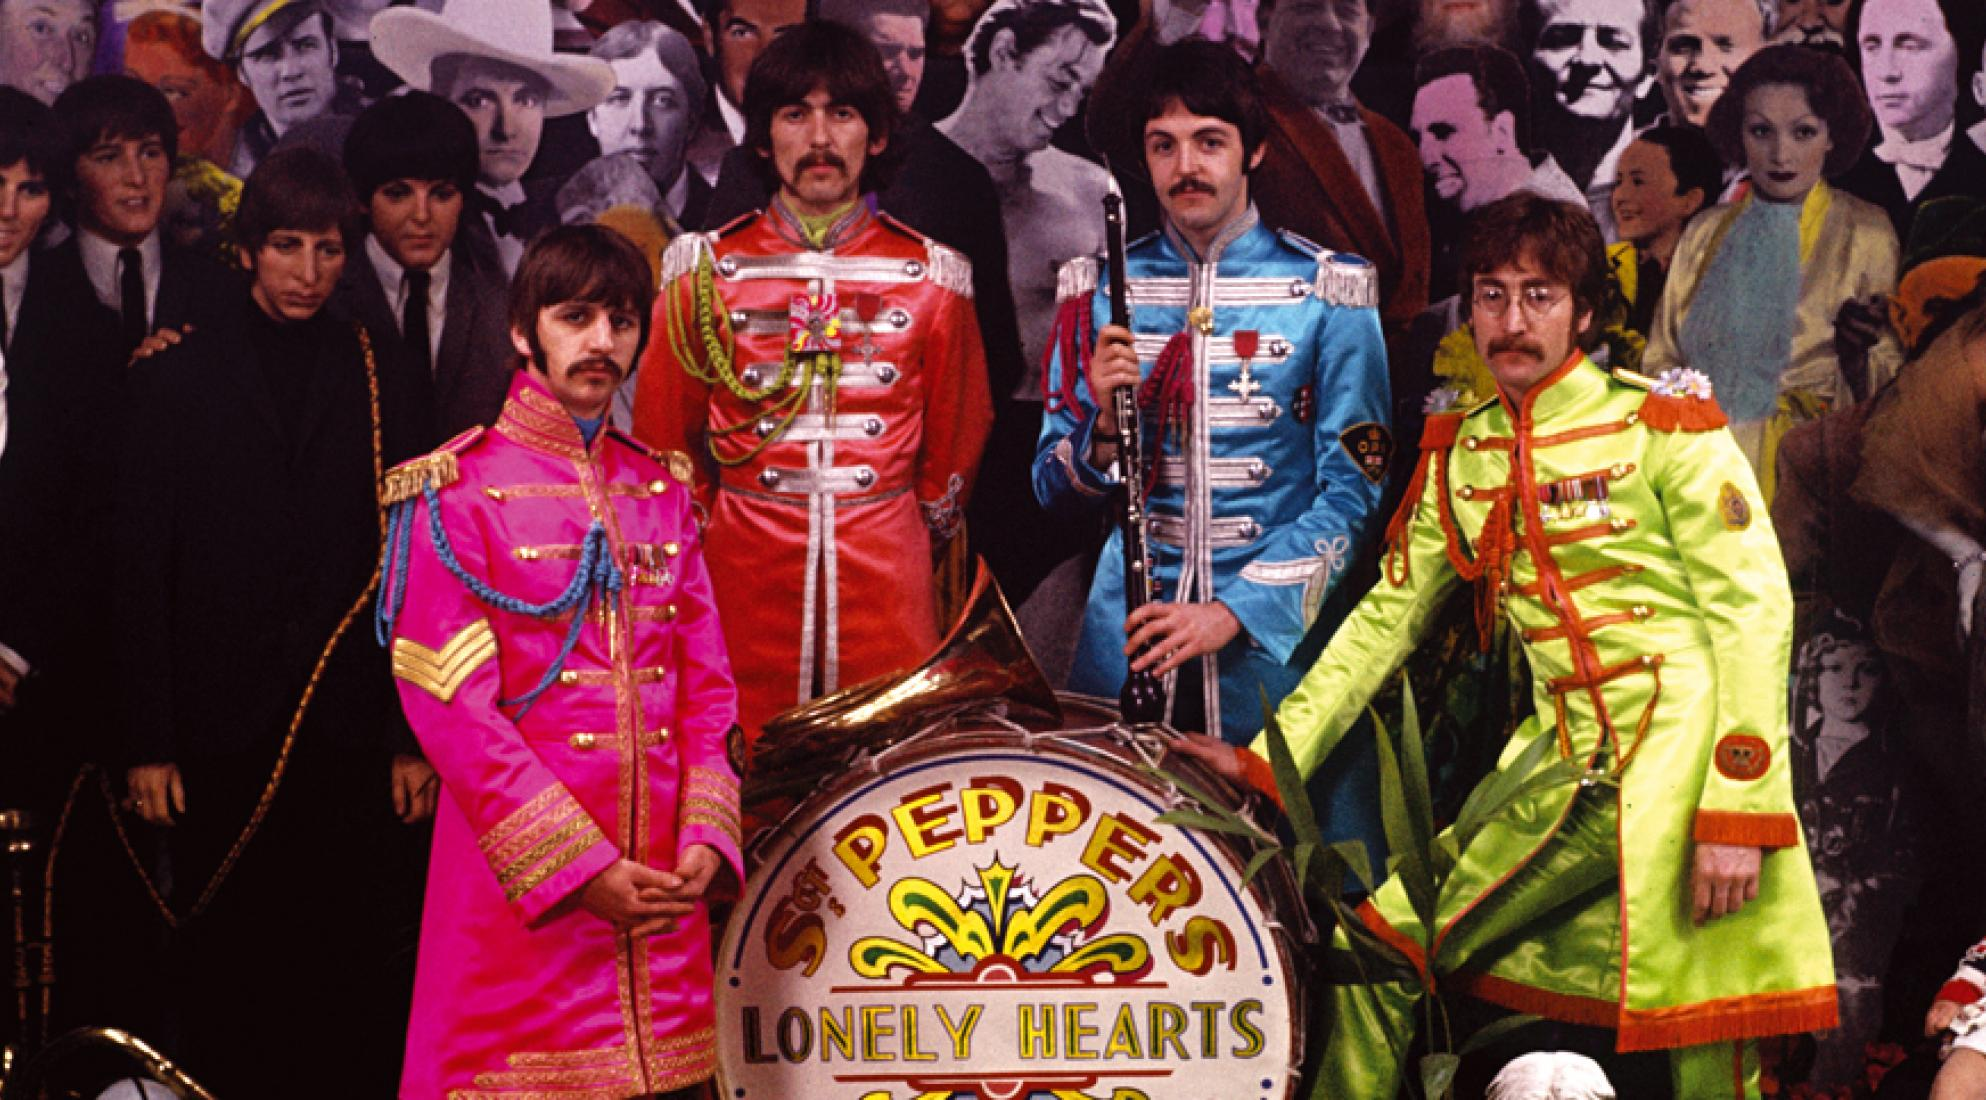 The Beatles' Sgt. Pepper's Lonely Hearts Club Band album cover